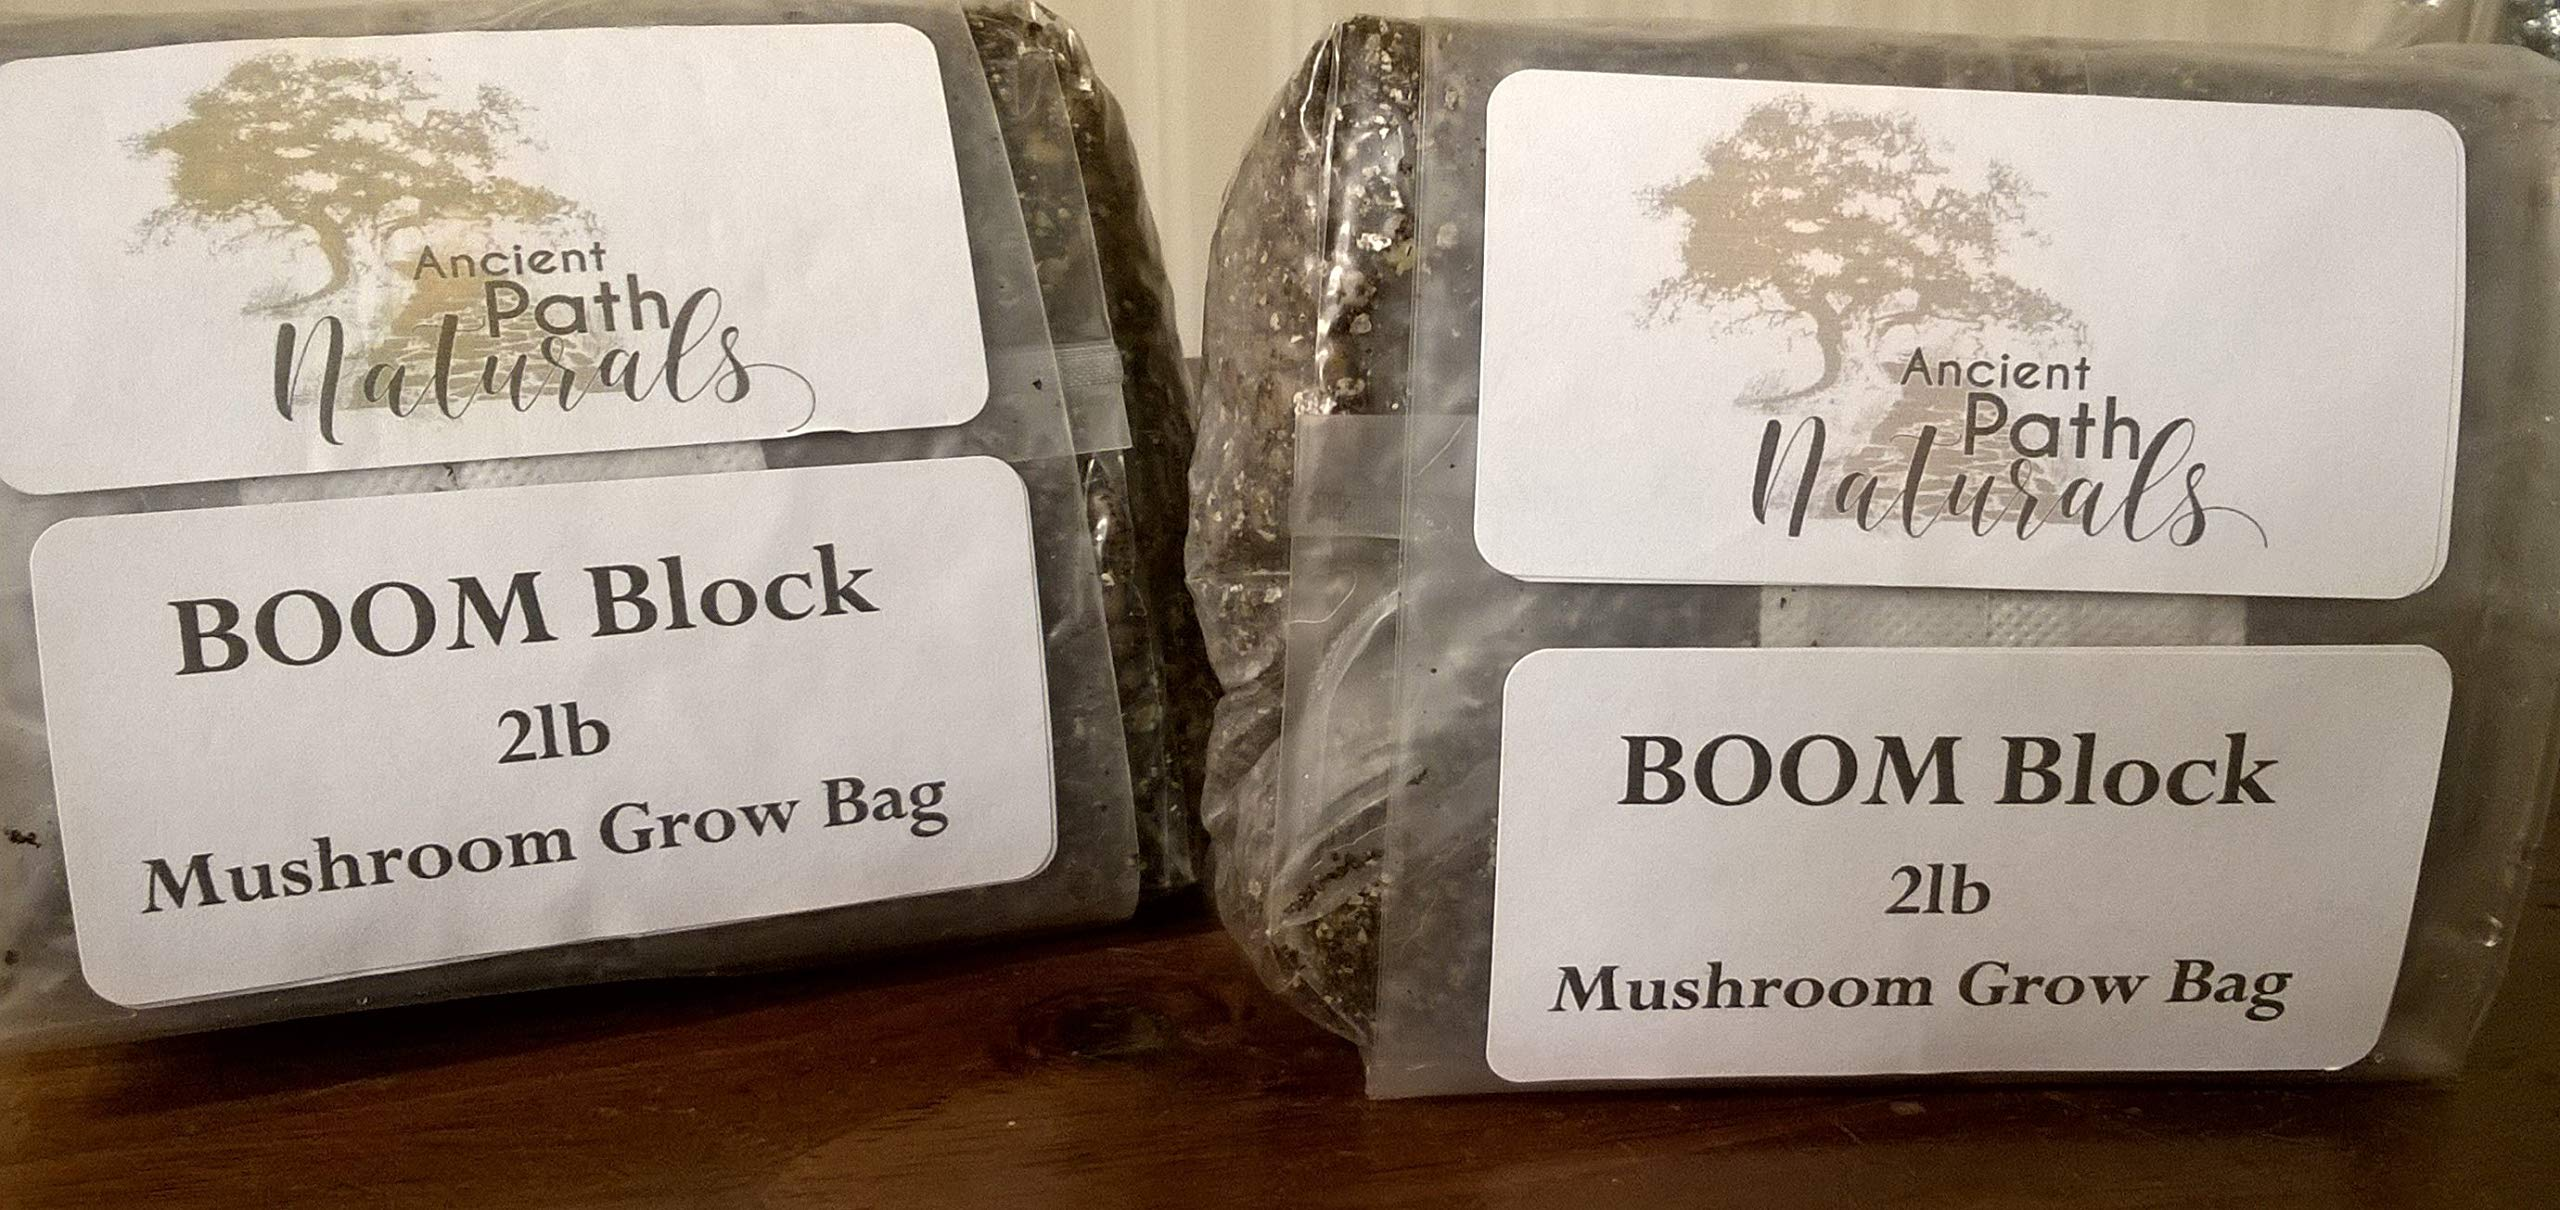 2lb Boom! Sterile Mushroom Spawn BagsReady to Grow, Just add Spores